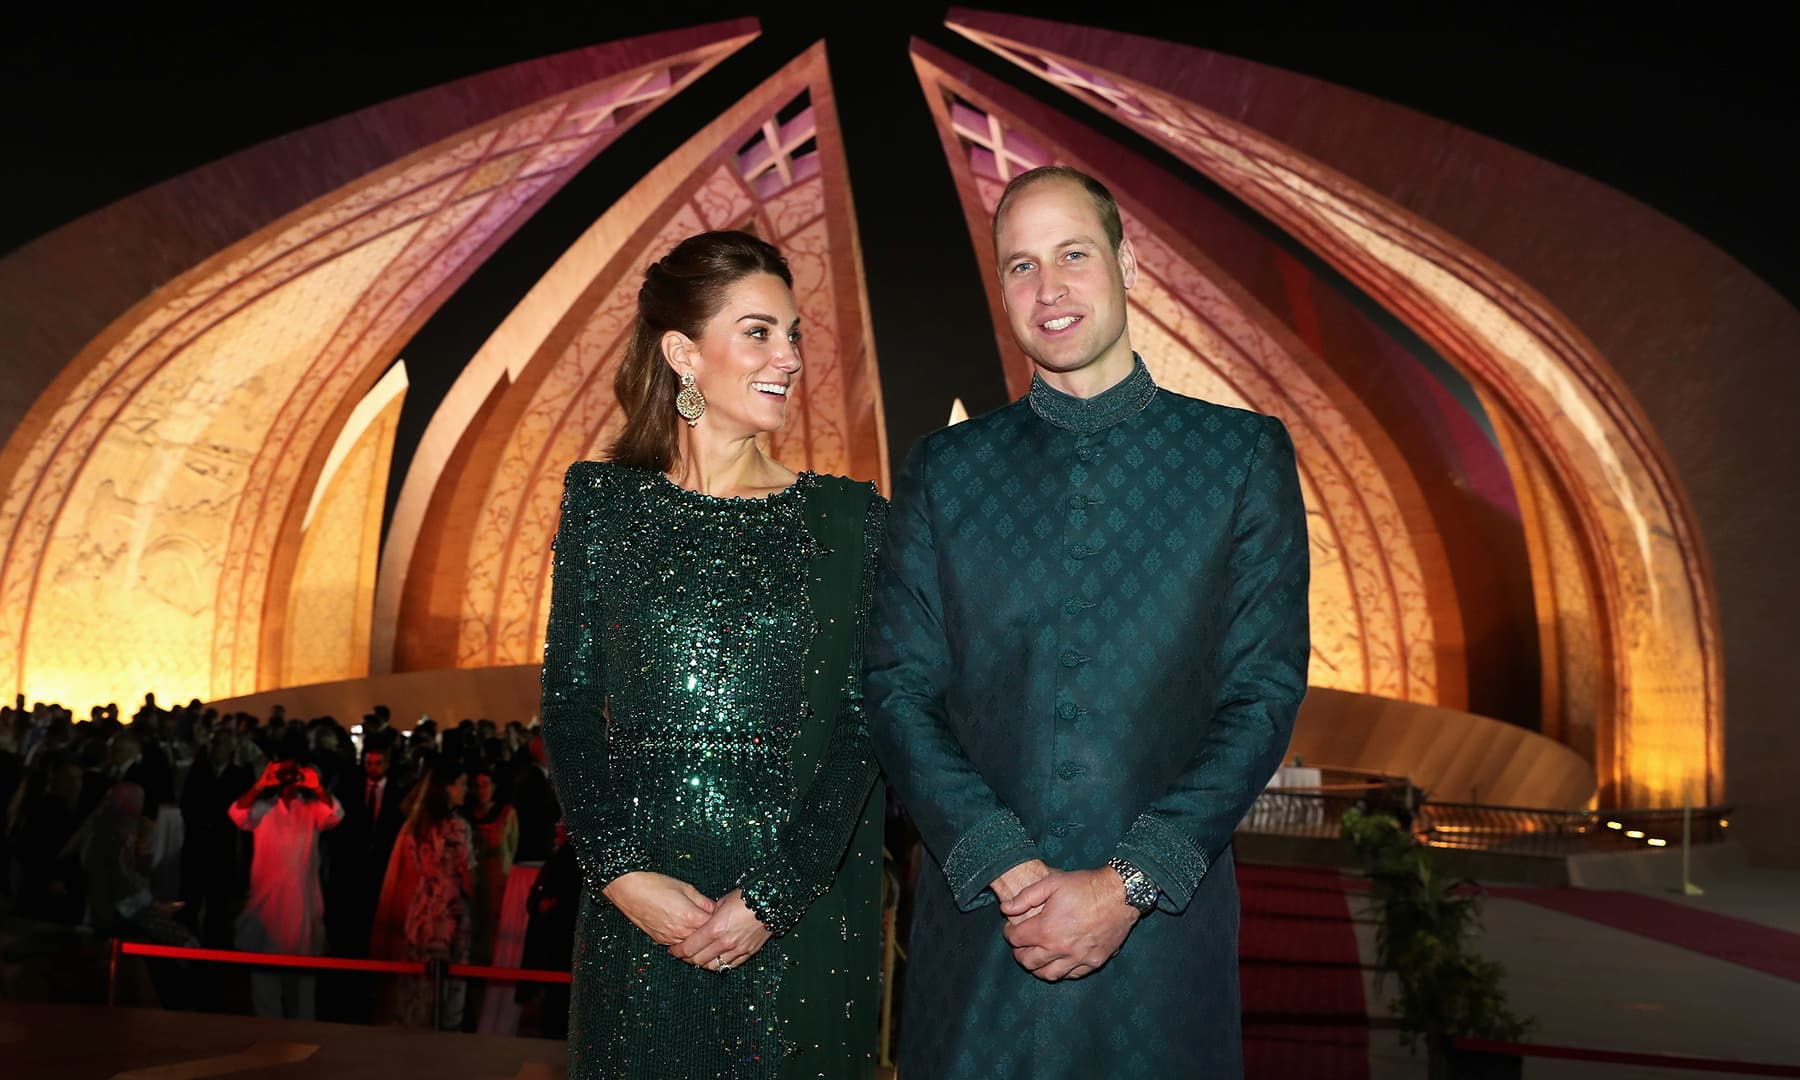 Prince William and Catherine, Duchess of Cambridge, pose as they attend a reception at the Pakistan National Monument in Islamabad. — Reuters